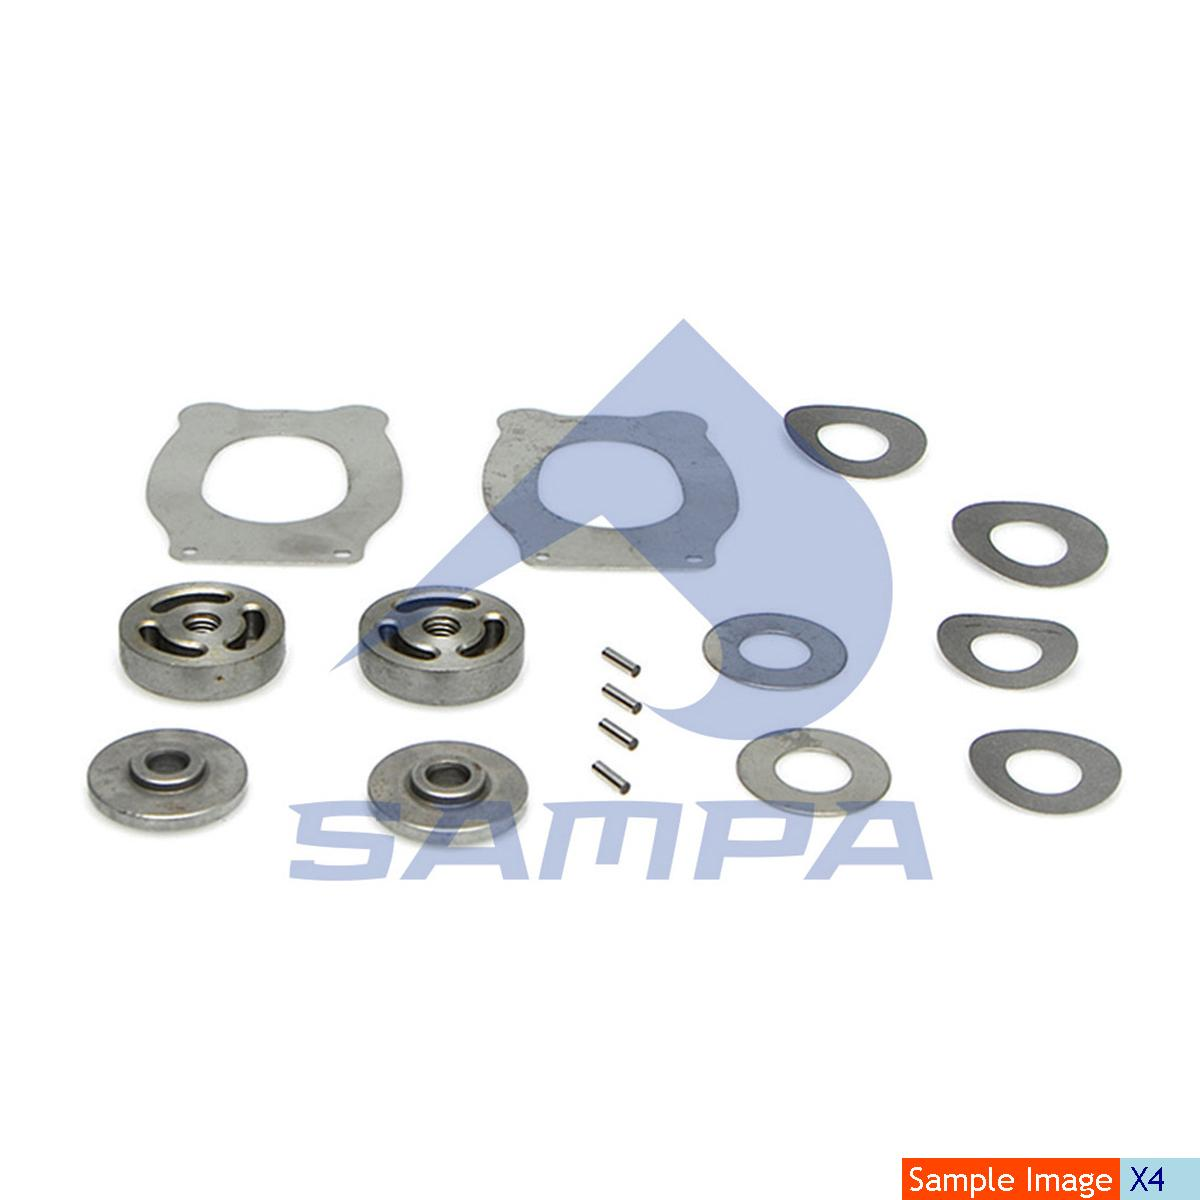 Repair Kit, Cylinder Head, Iveco, Compressed Air System